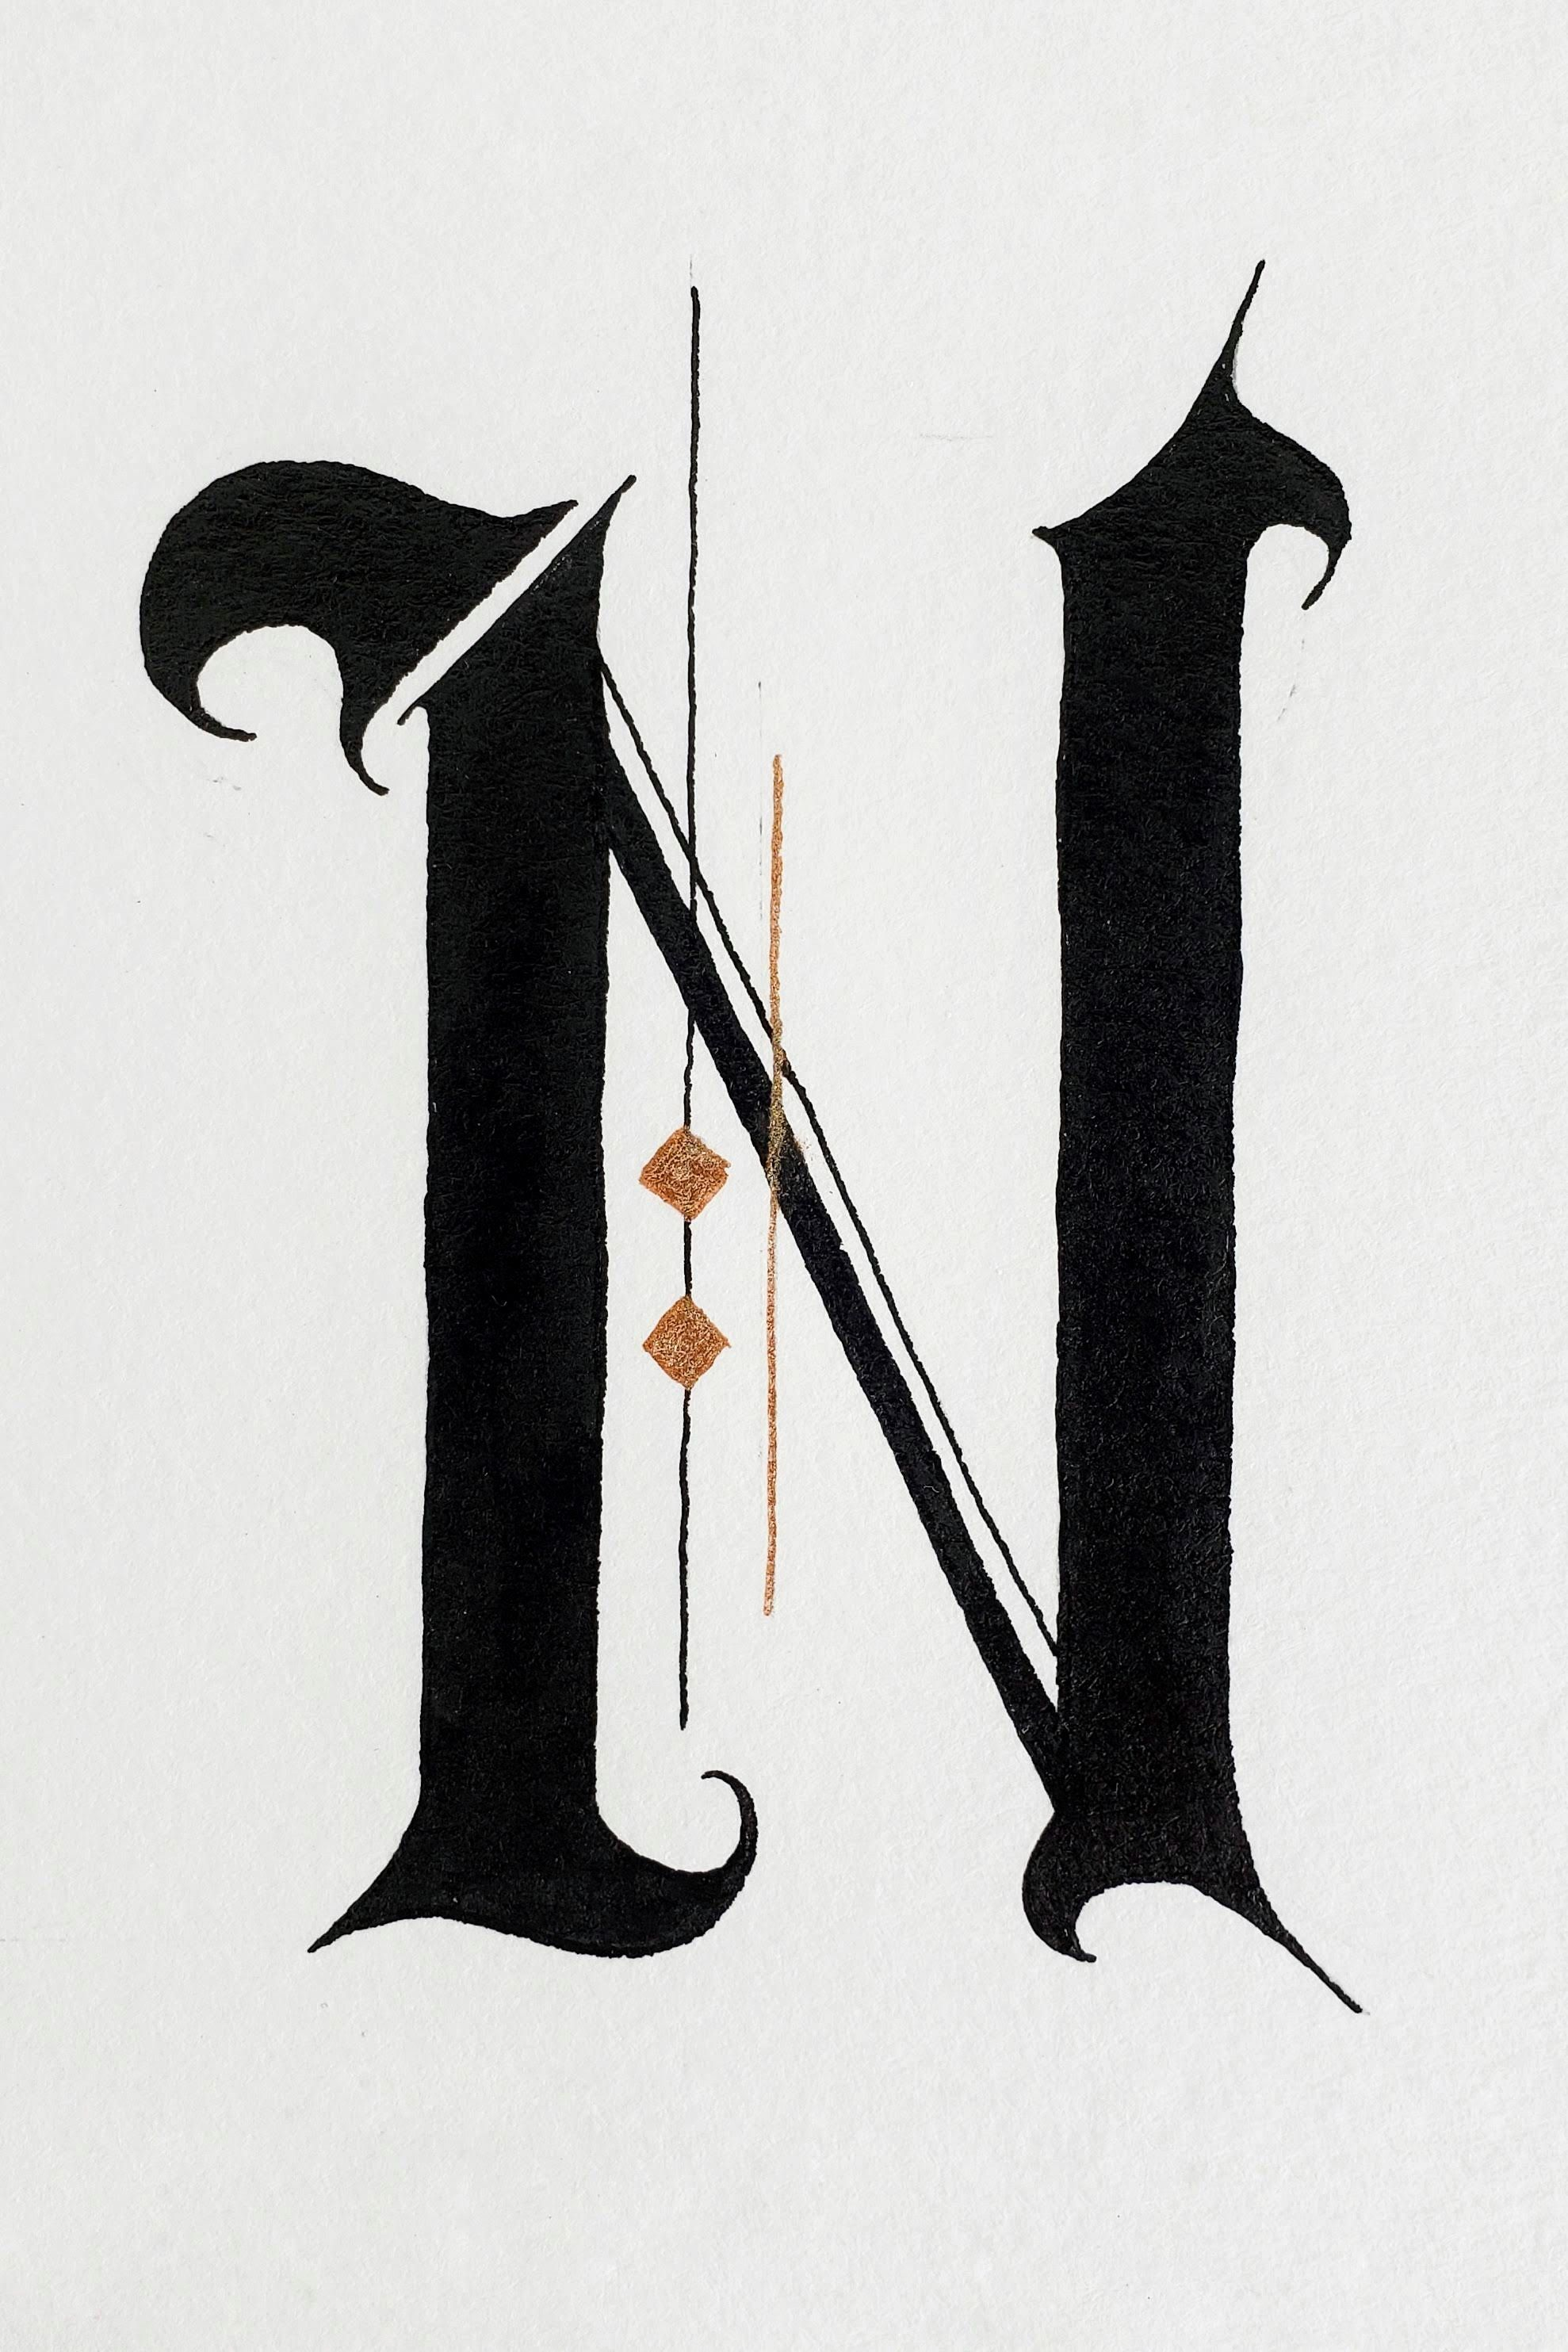 Letter N In Different Fonts : letter, different, fonts, Letter, Things, Night, Style, Study, Gothic, Lettering,, Design,, Lettering, Alphabet, Fonts